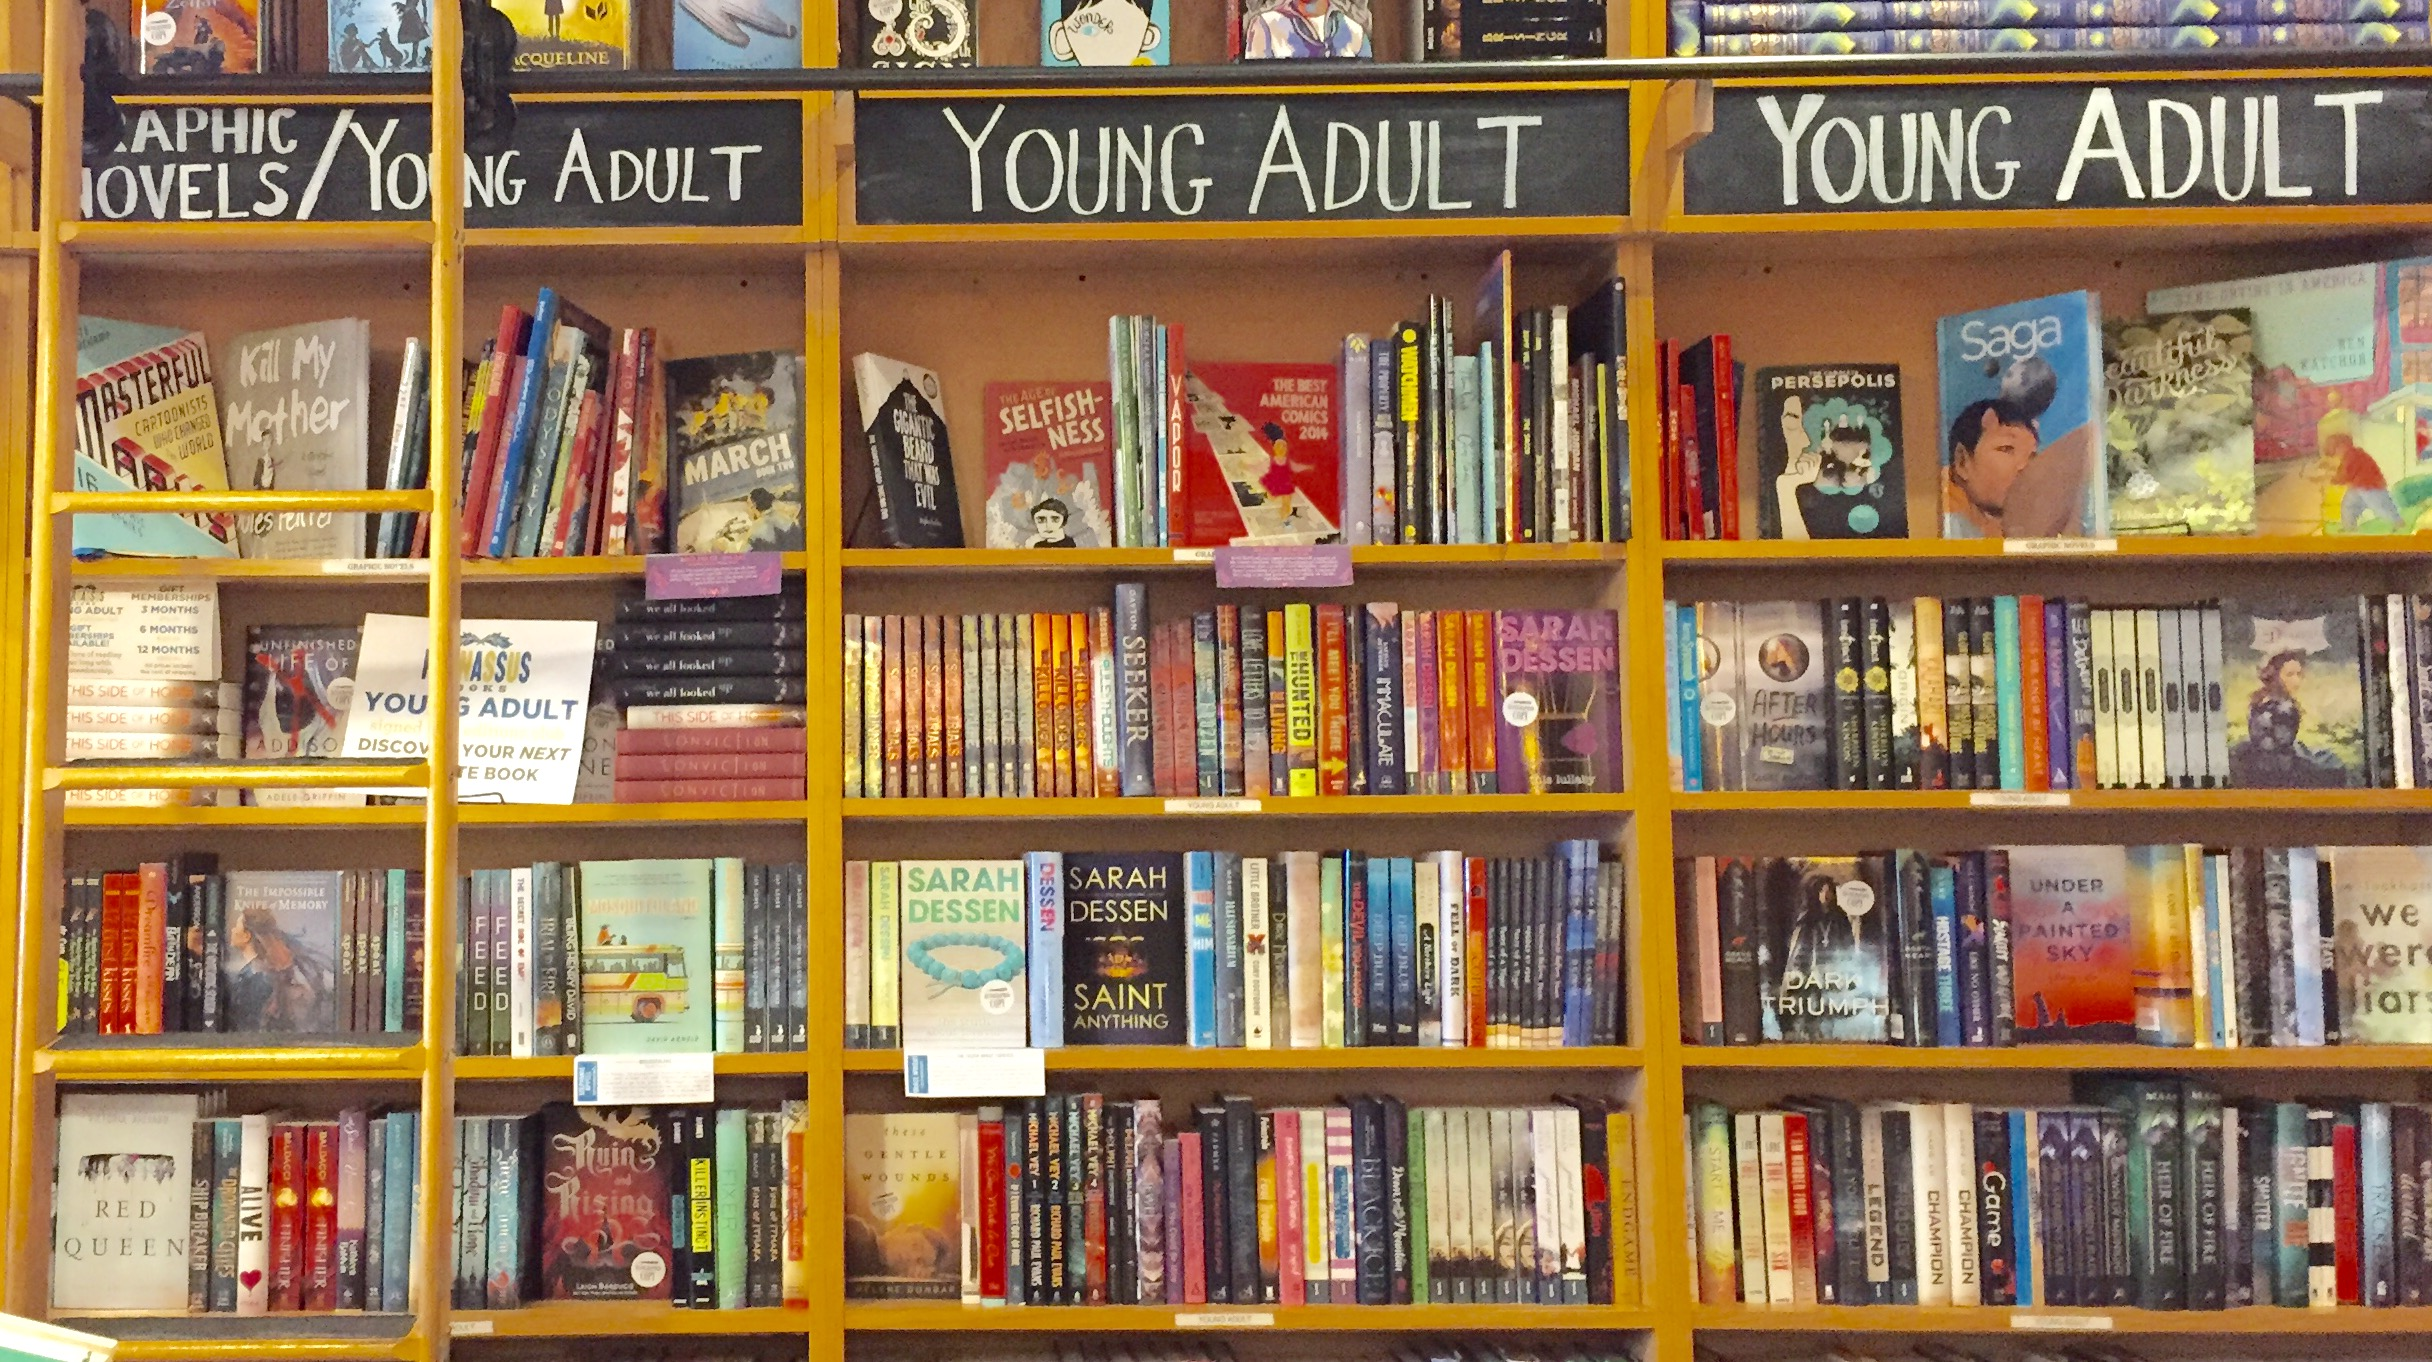 Adult fiction young books Popular